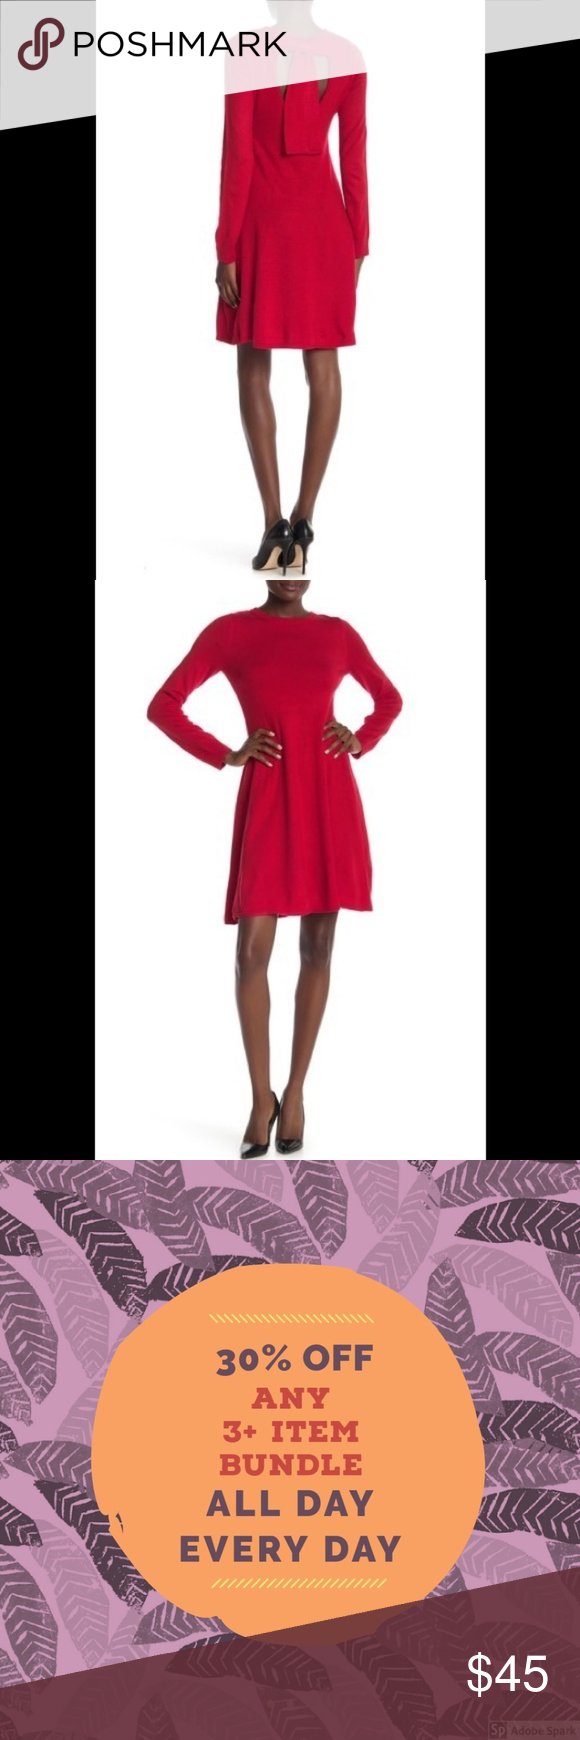 Vince Camuto Red Bow Knit Dress Princess Line Vince Camuto Knit Long Sleeve Dress Nwt Features An Oval Ba Long Sleeve Knit Dress Knit Dress Red Sweater Dress [ 1740 x 580 Pixel ]